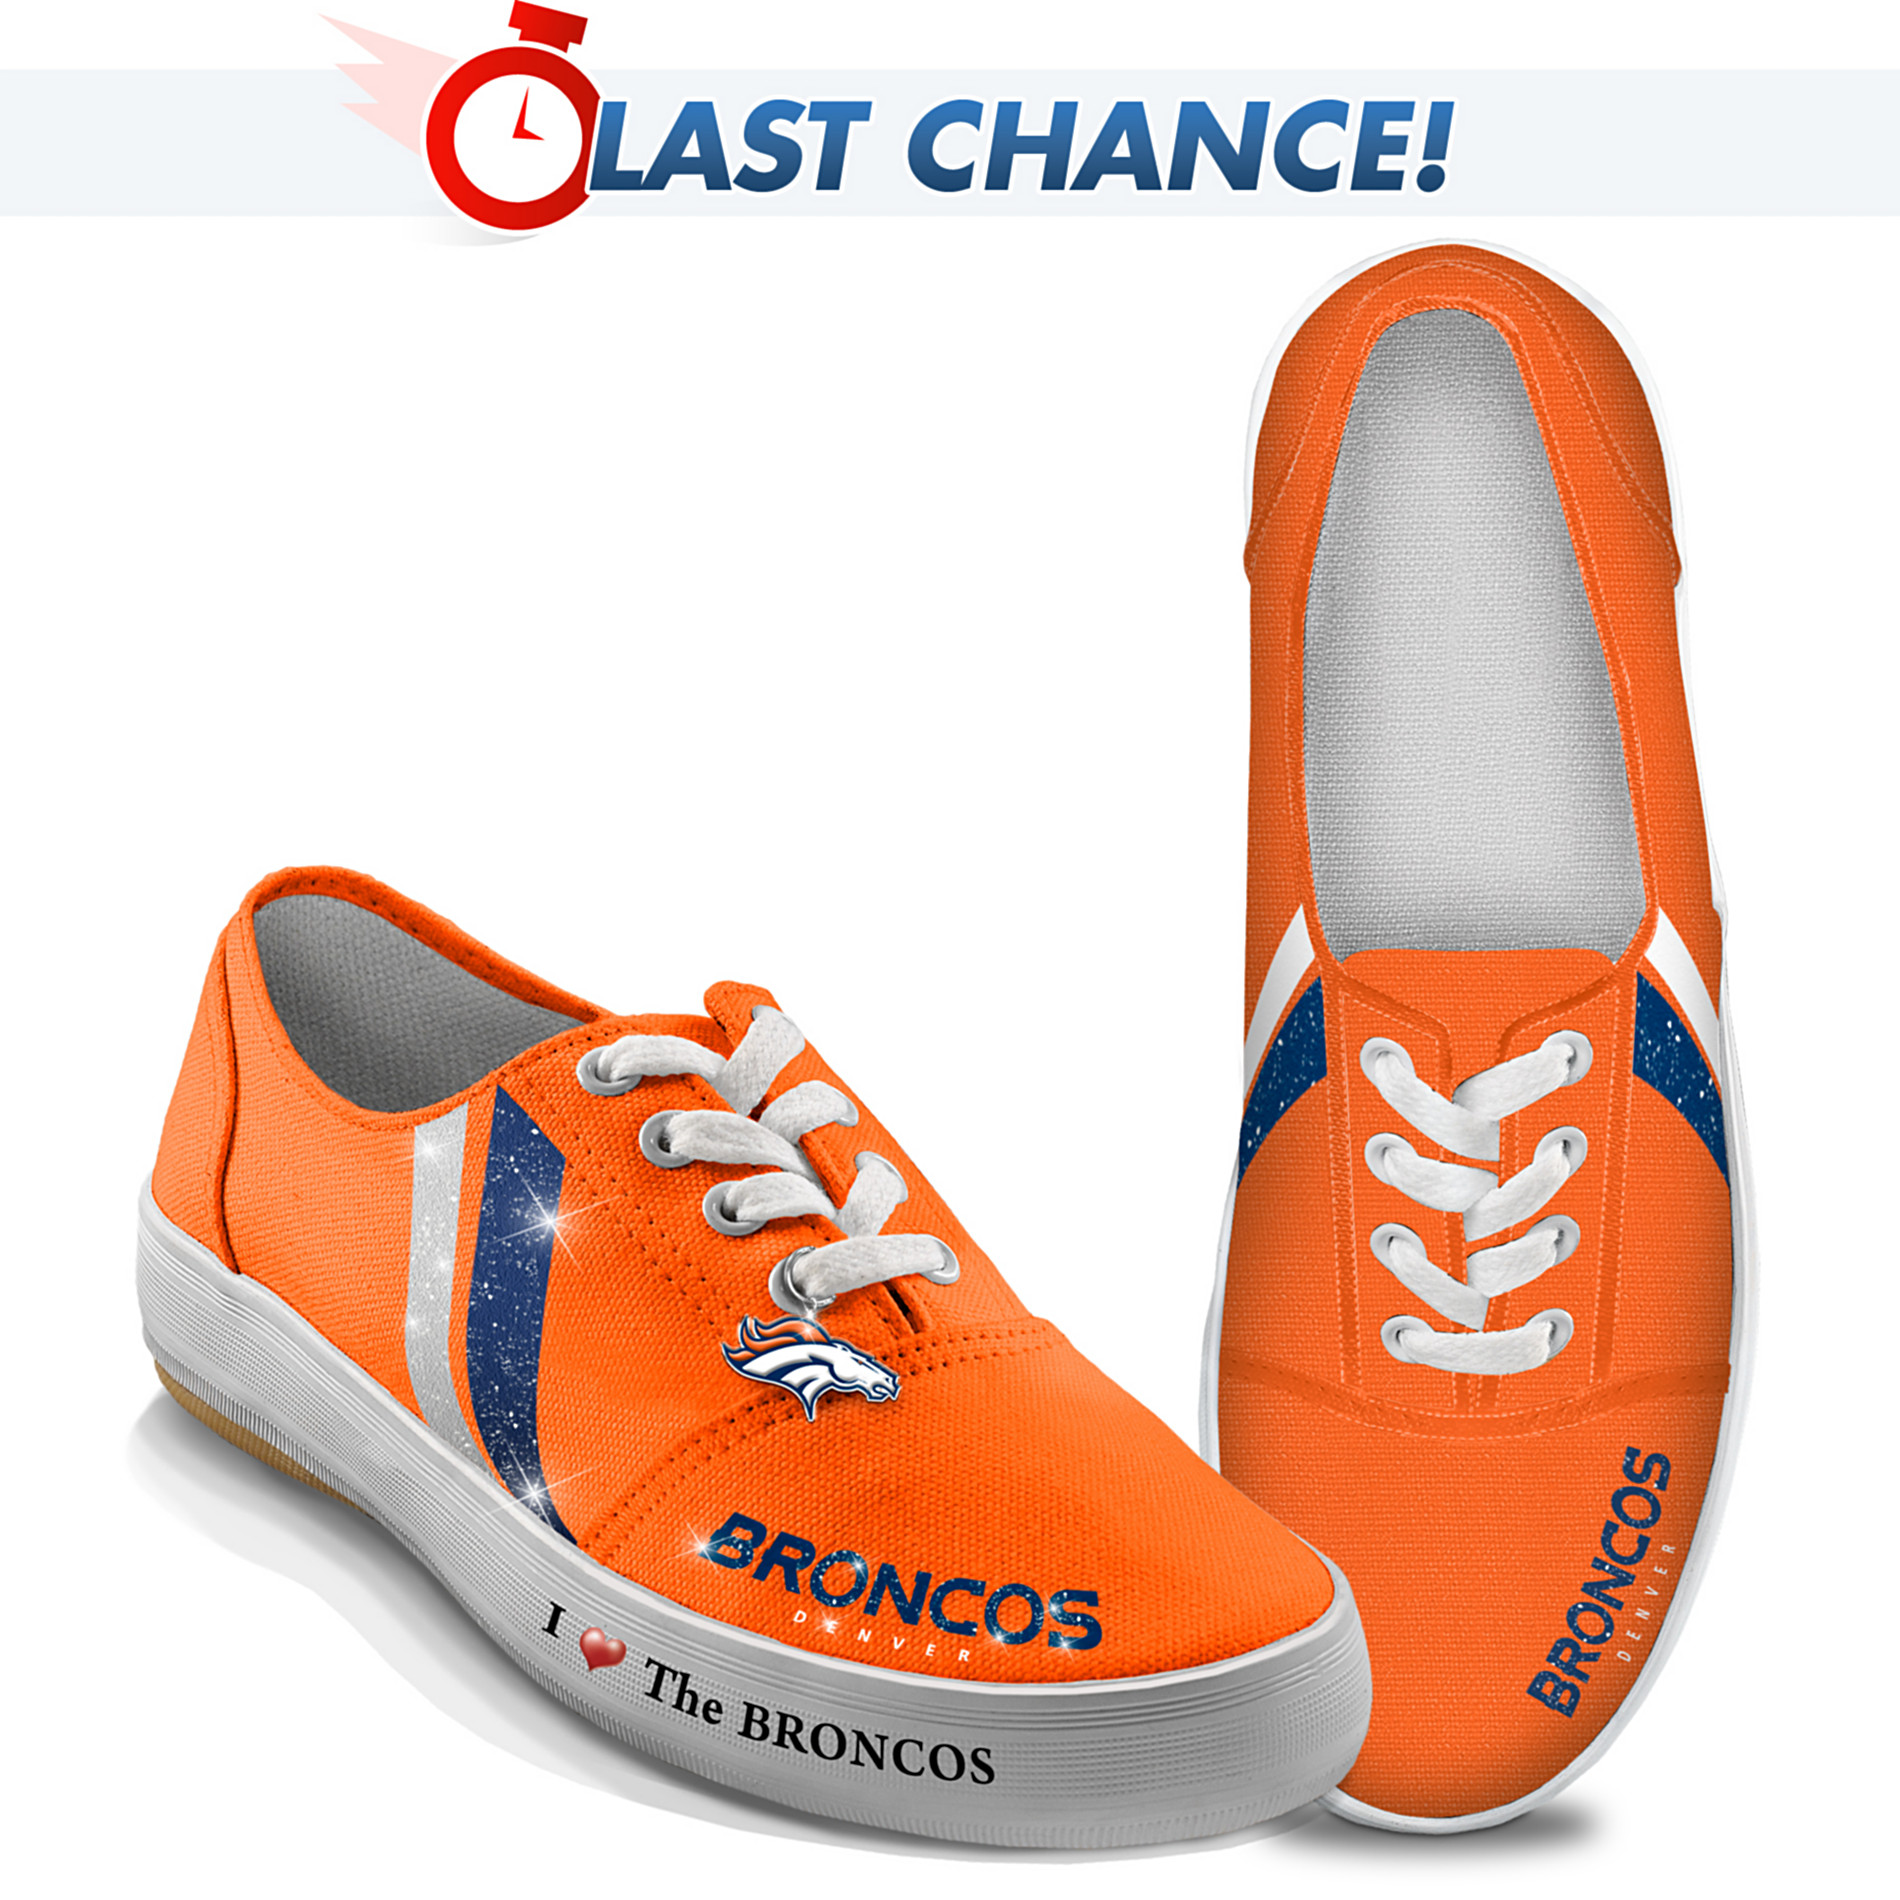 The Bradford Exchange Women's Shoes: I Love The Broncos Women's Shoes at Sears.com